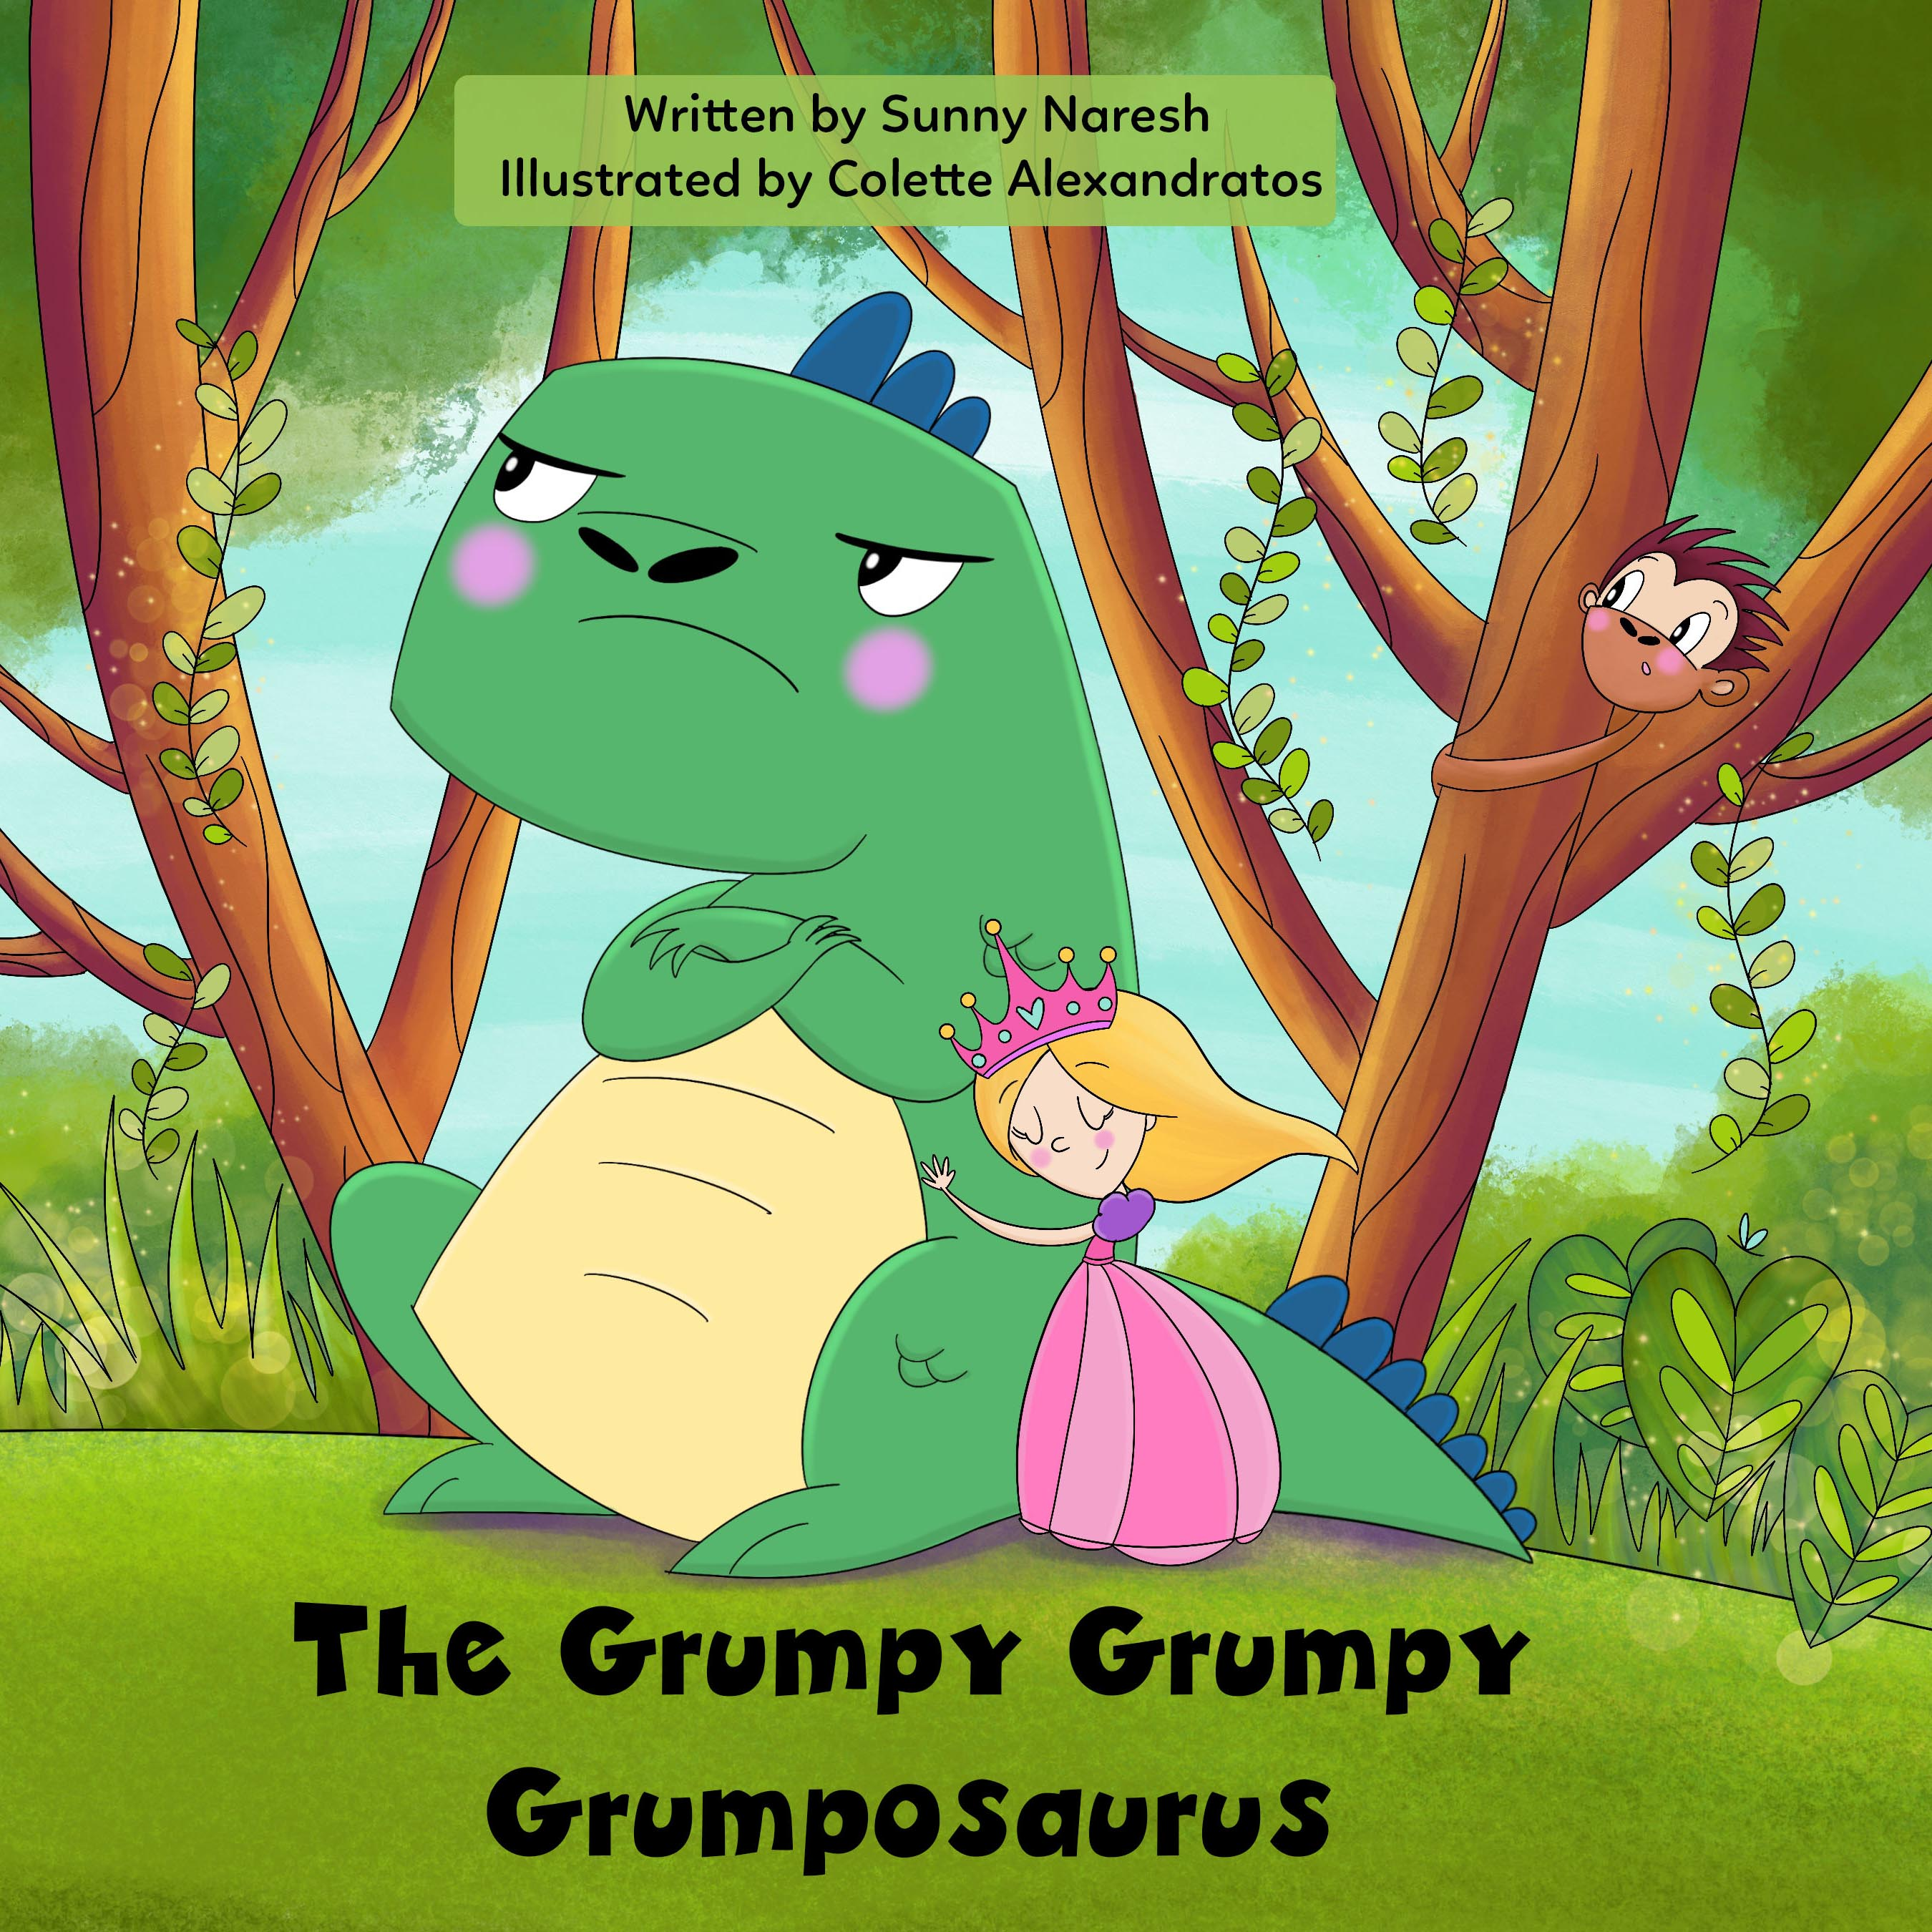 The Grumpy Grumpy Grumposaurus